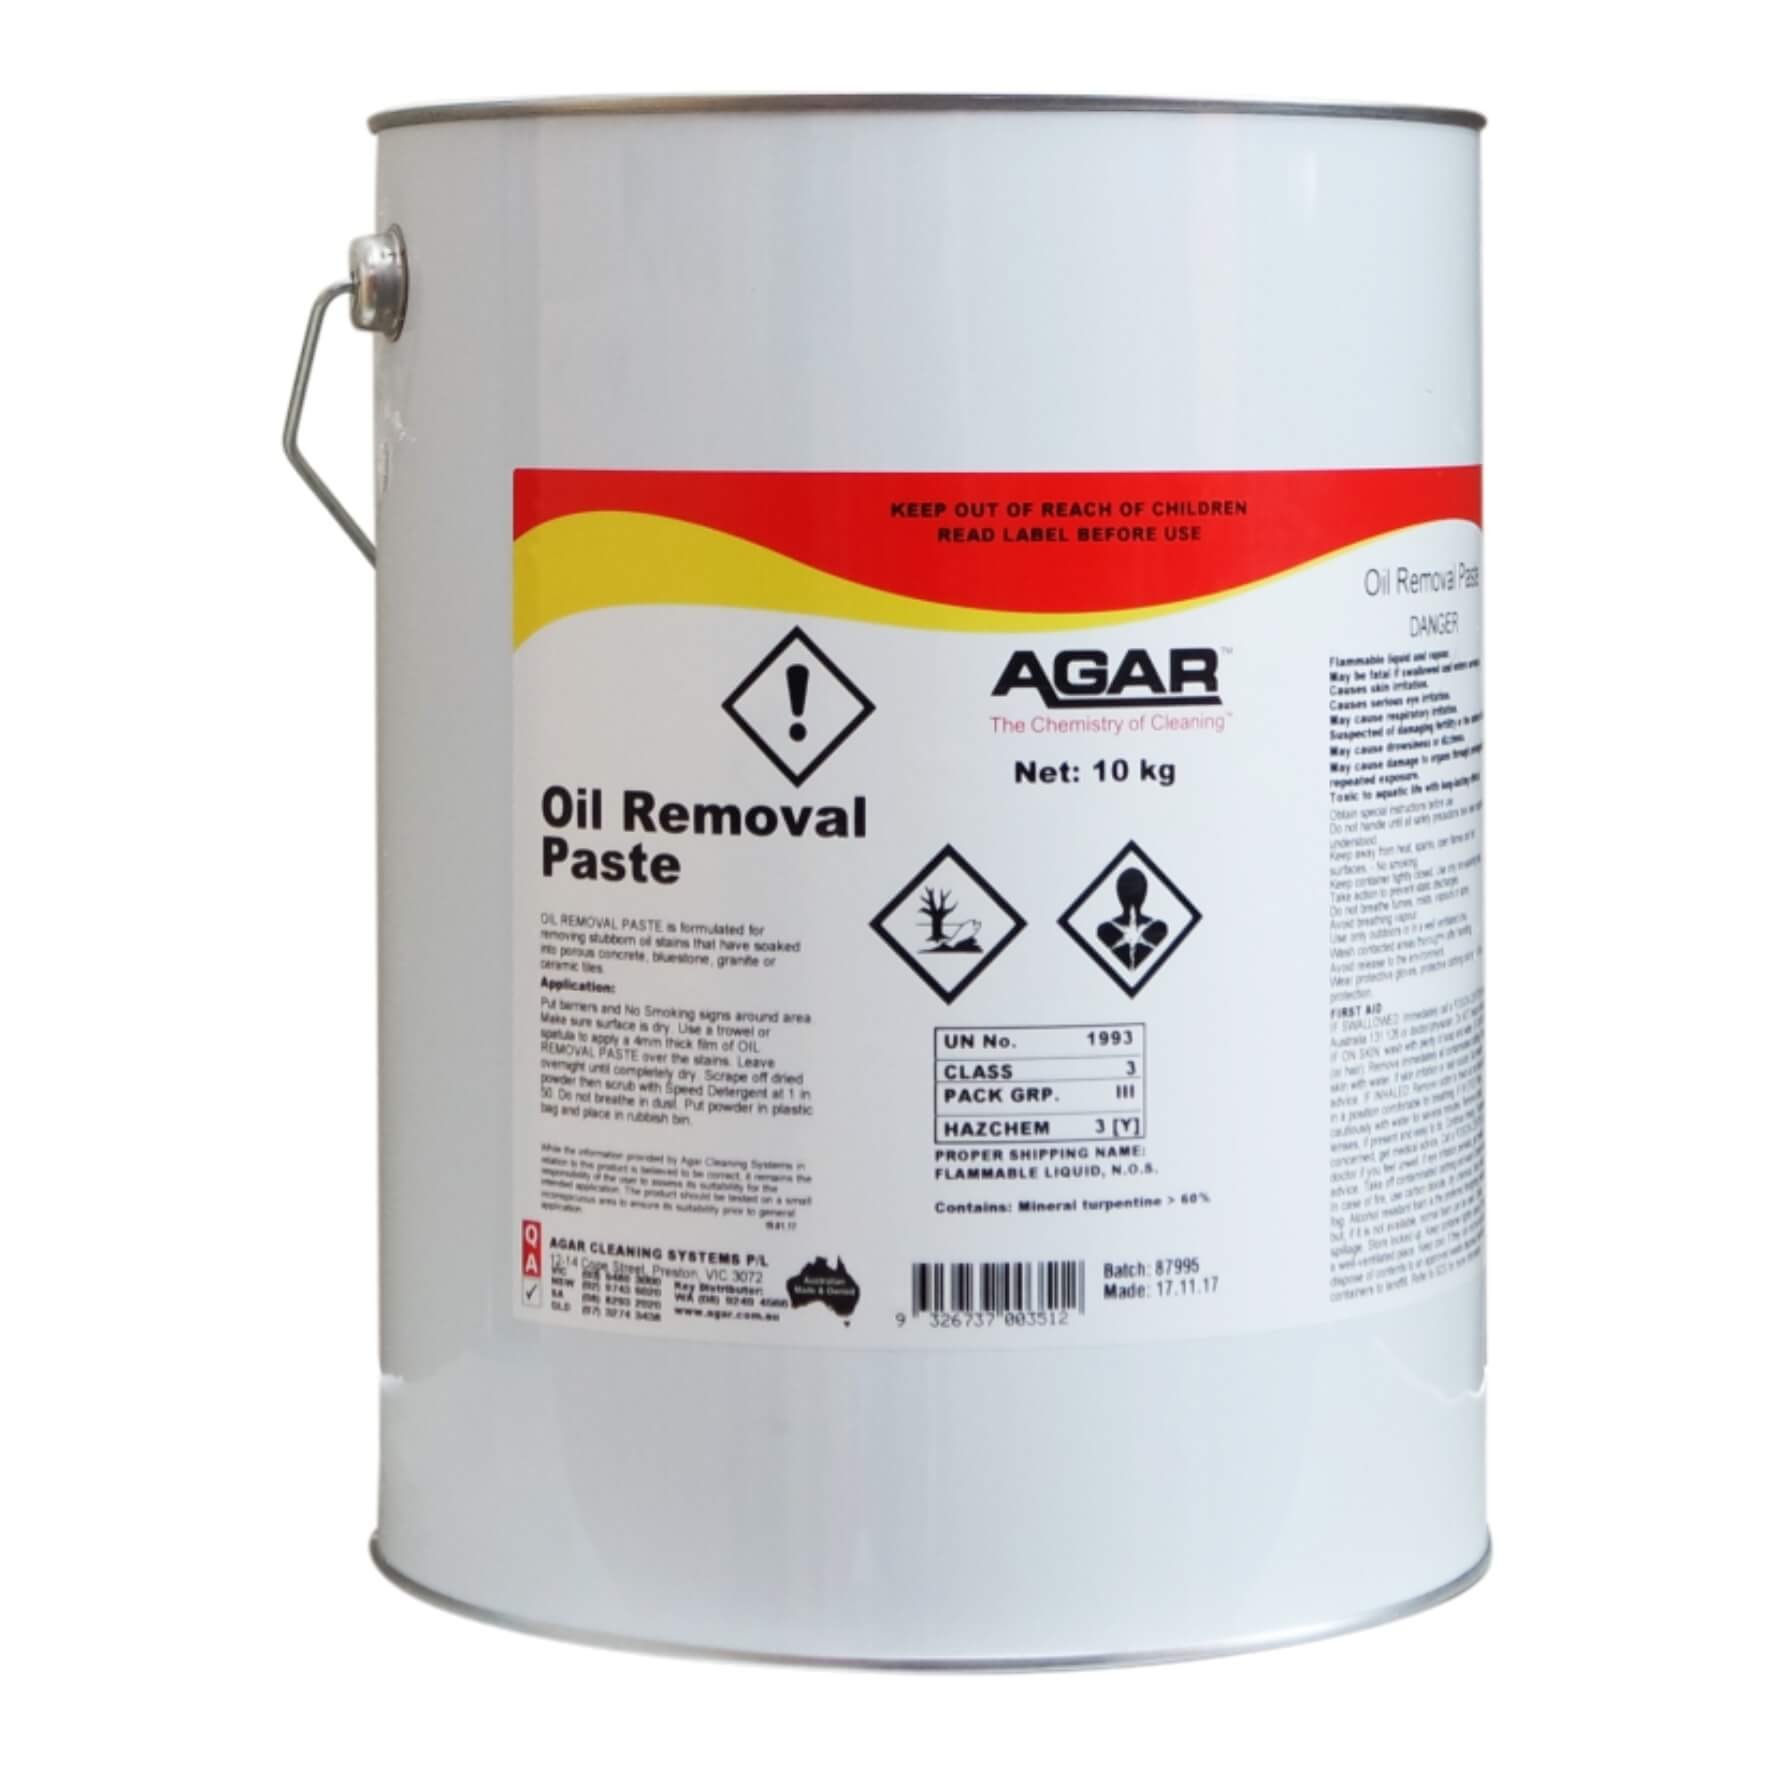 Oil Removal Paste | Agar Cleaning Systems